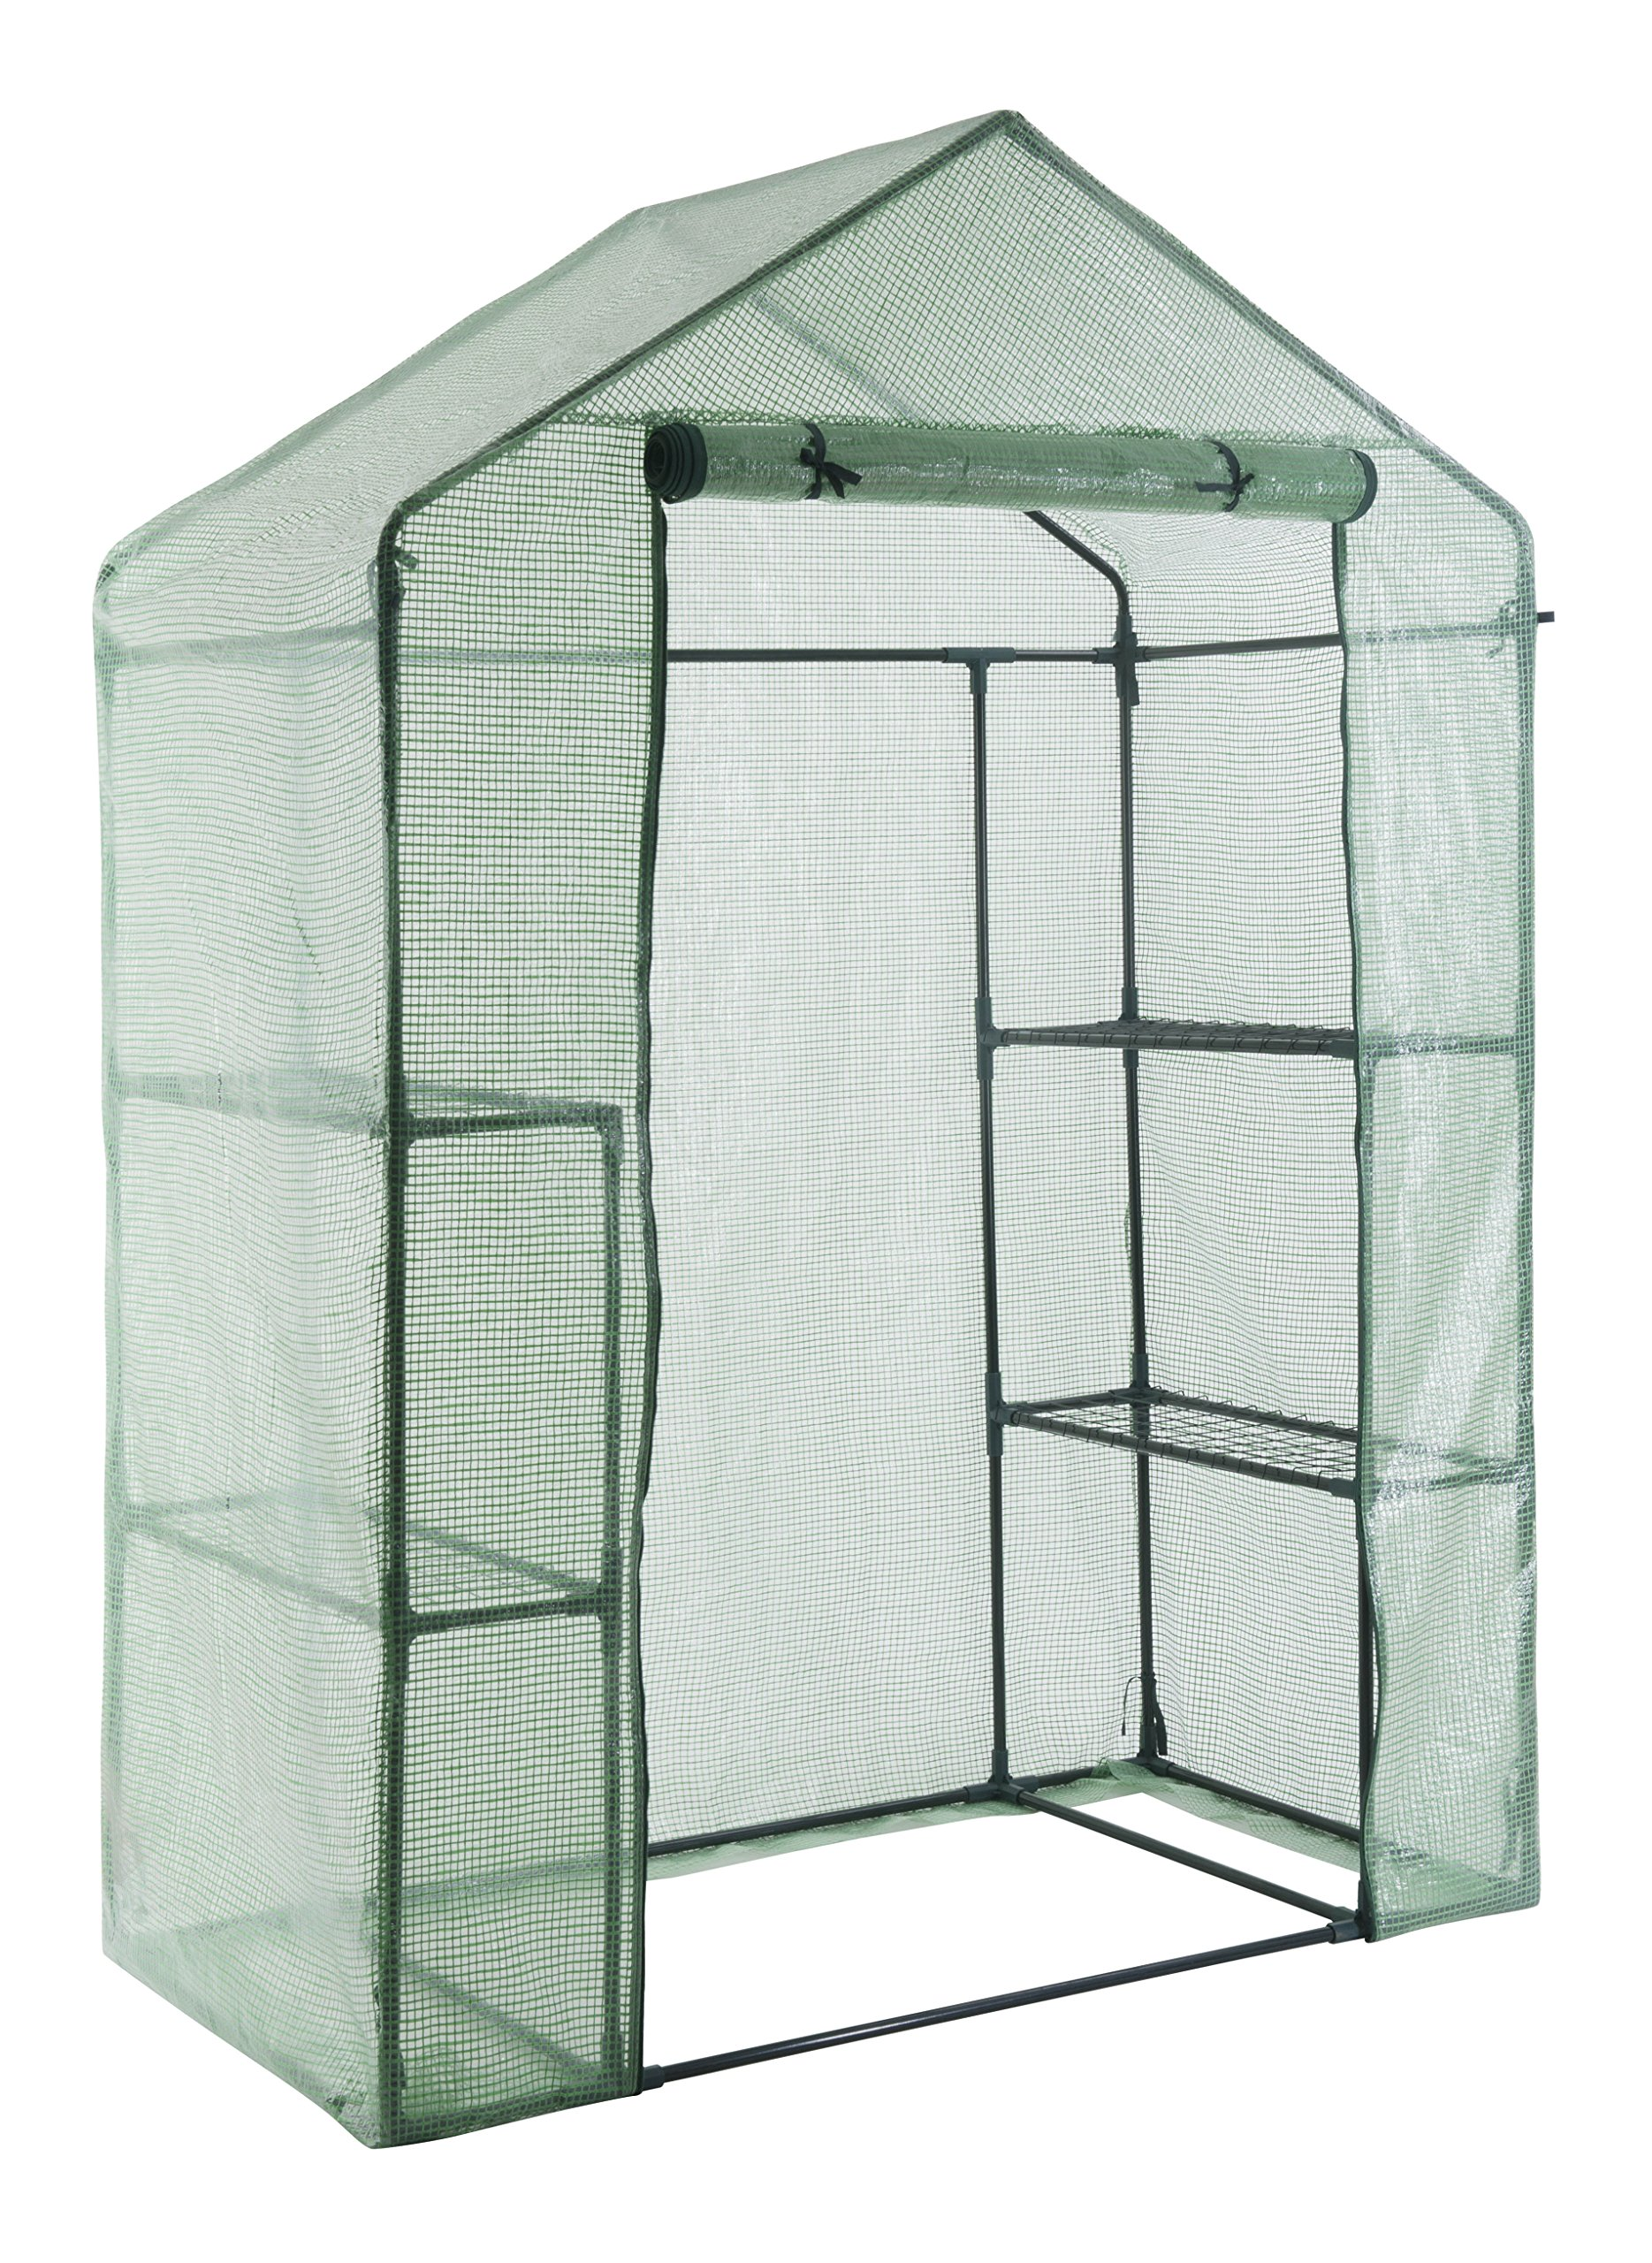 GOJOOASIS Walk in Portable Garden Greenhouse Mini Plants Shed Hot House with 3 Tiers by GOJOOASIS